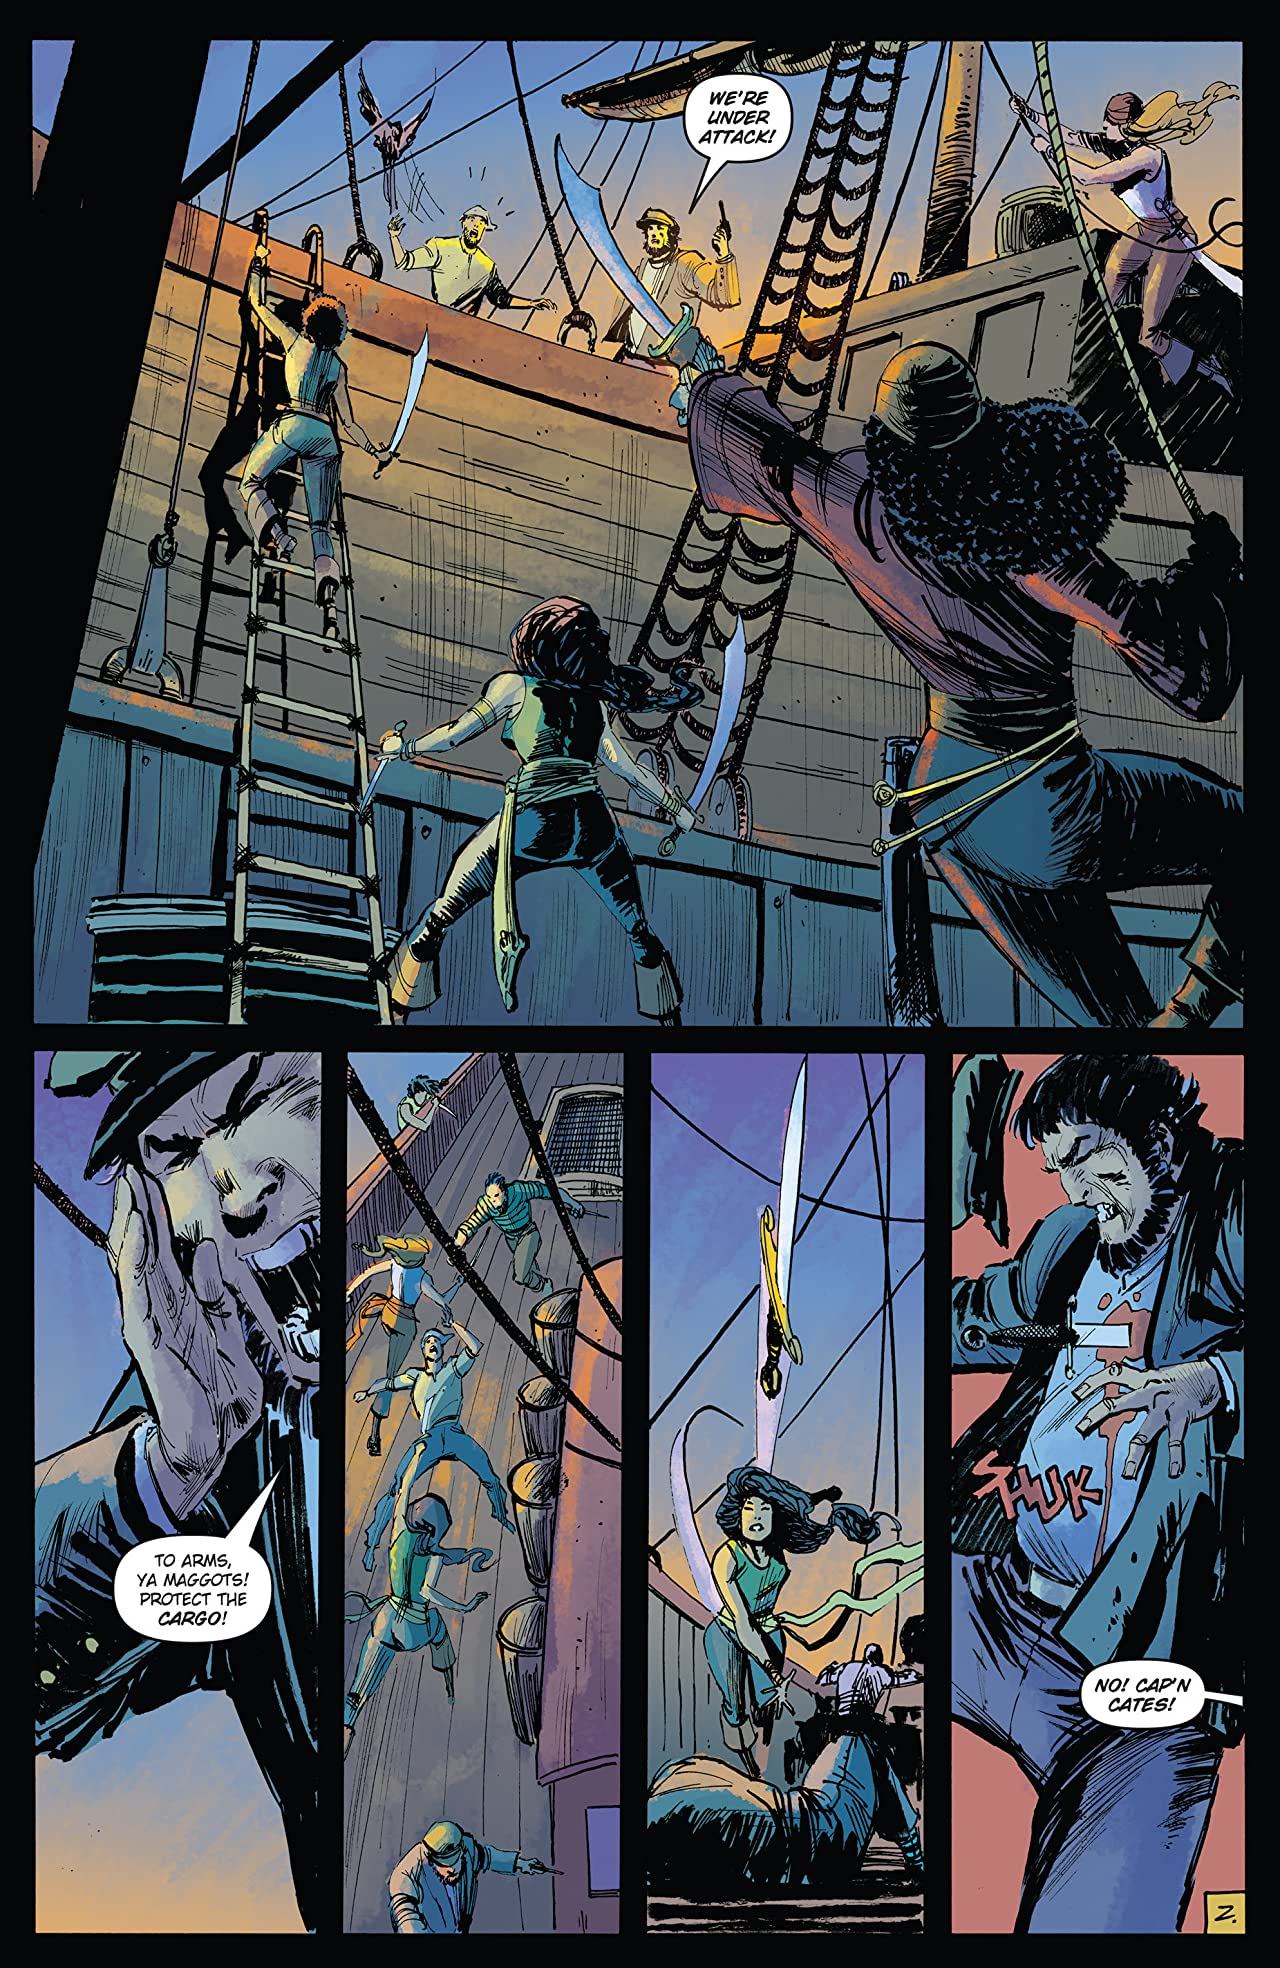 Five Ghosts #8